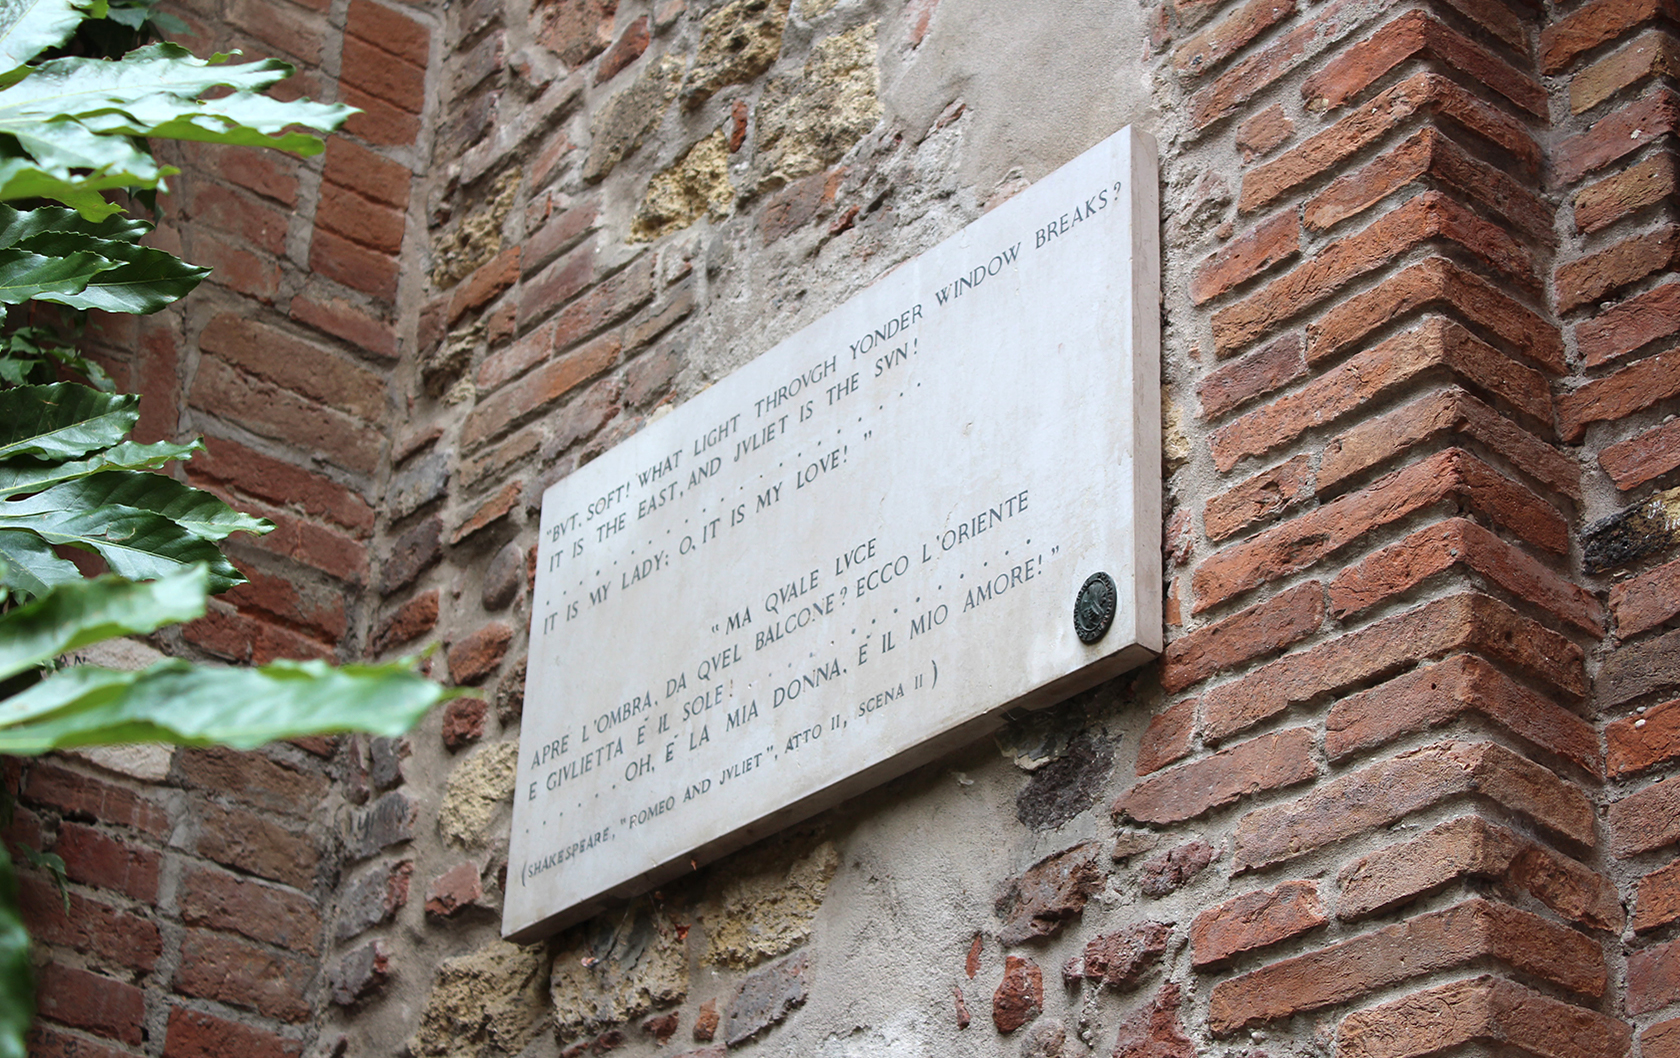 Shakespeare sign at Juliet's House